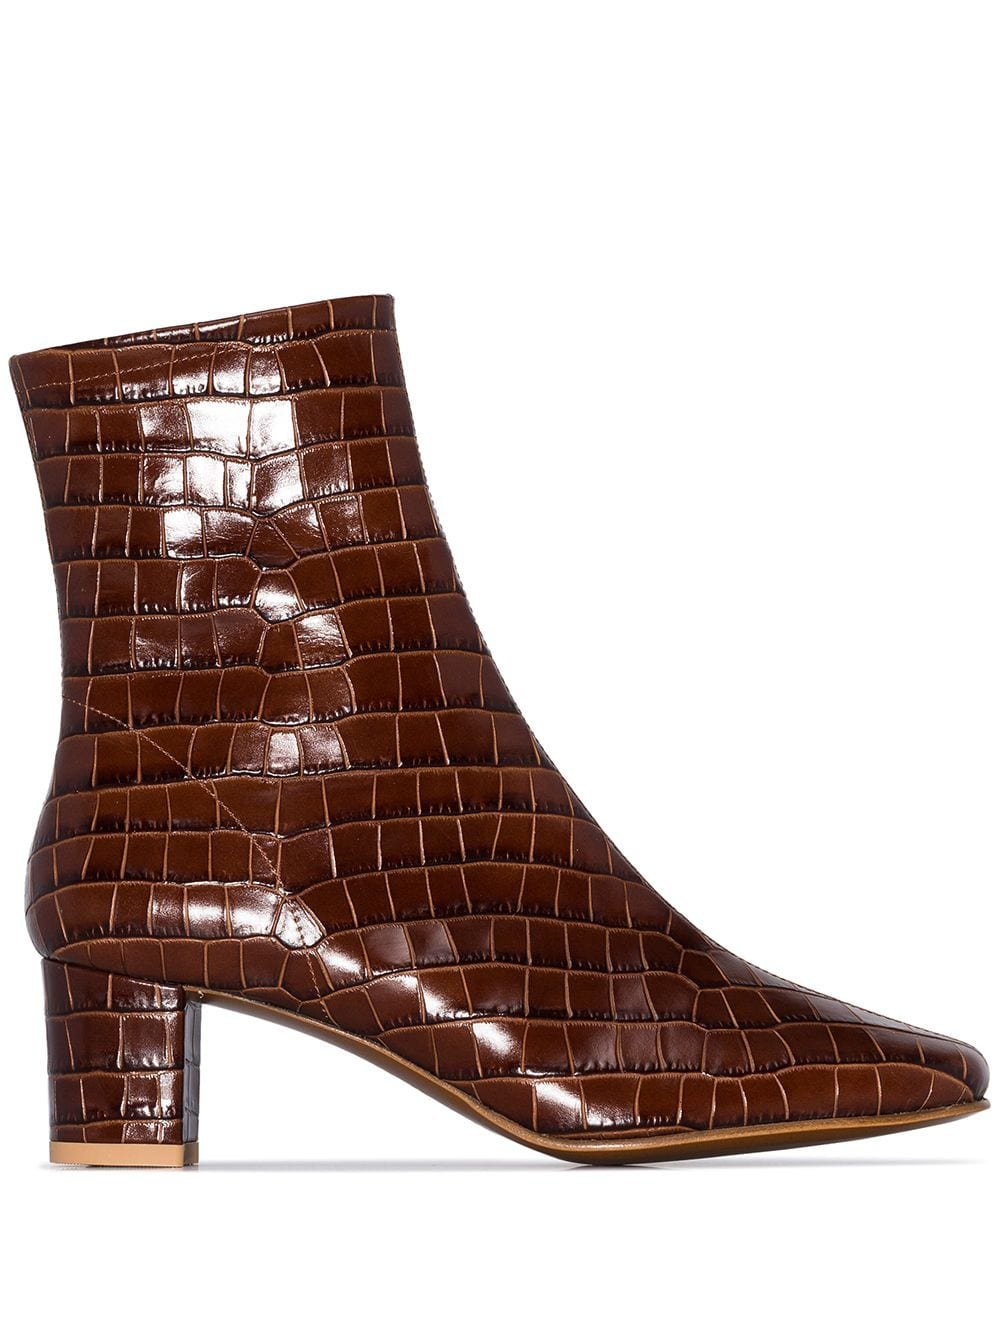 BY FAR Sofia 63 Crocodile-effect Ankle Boots | Farfetch.com